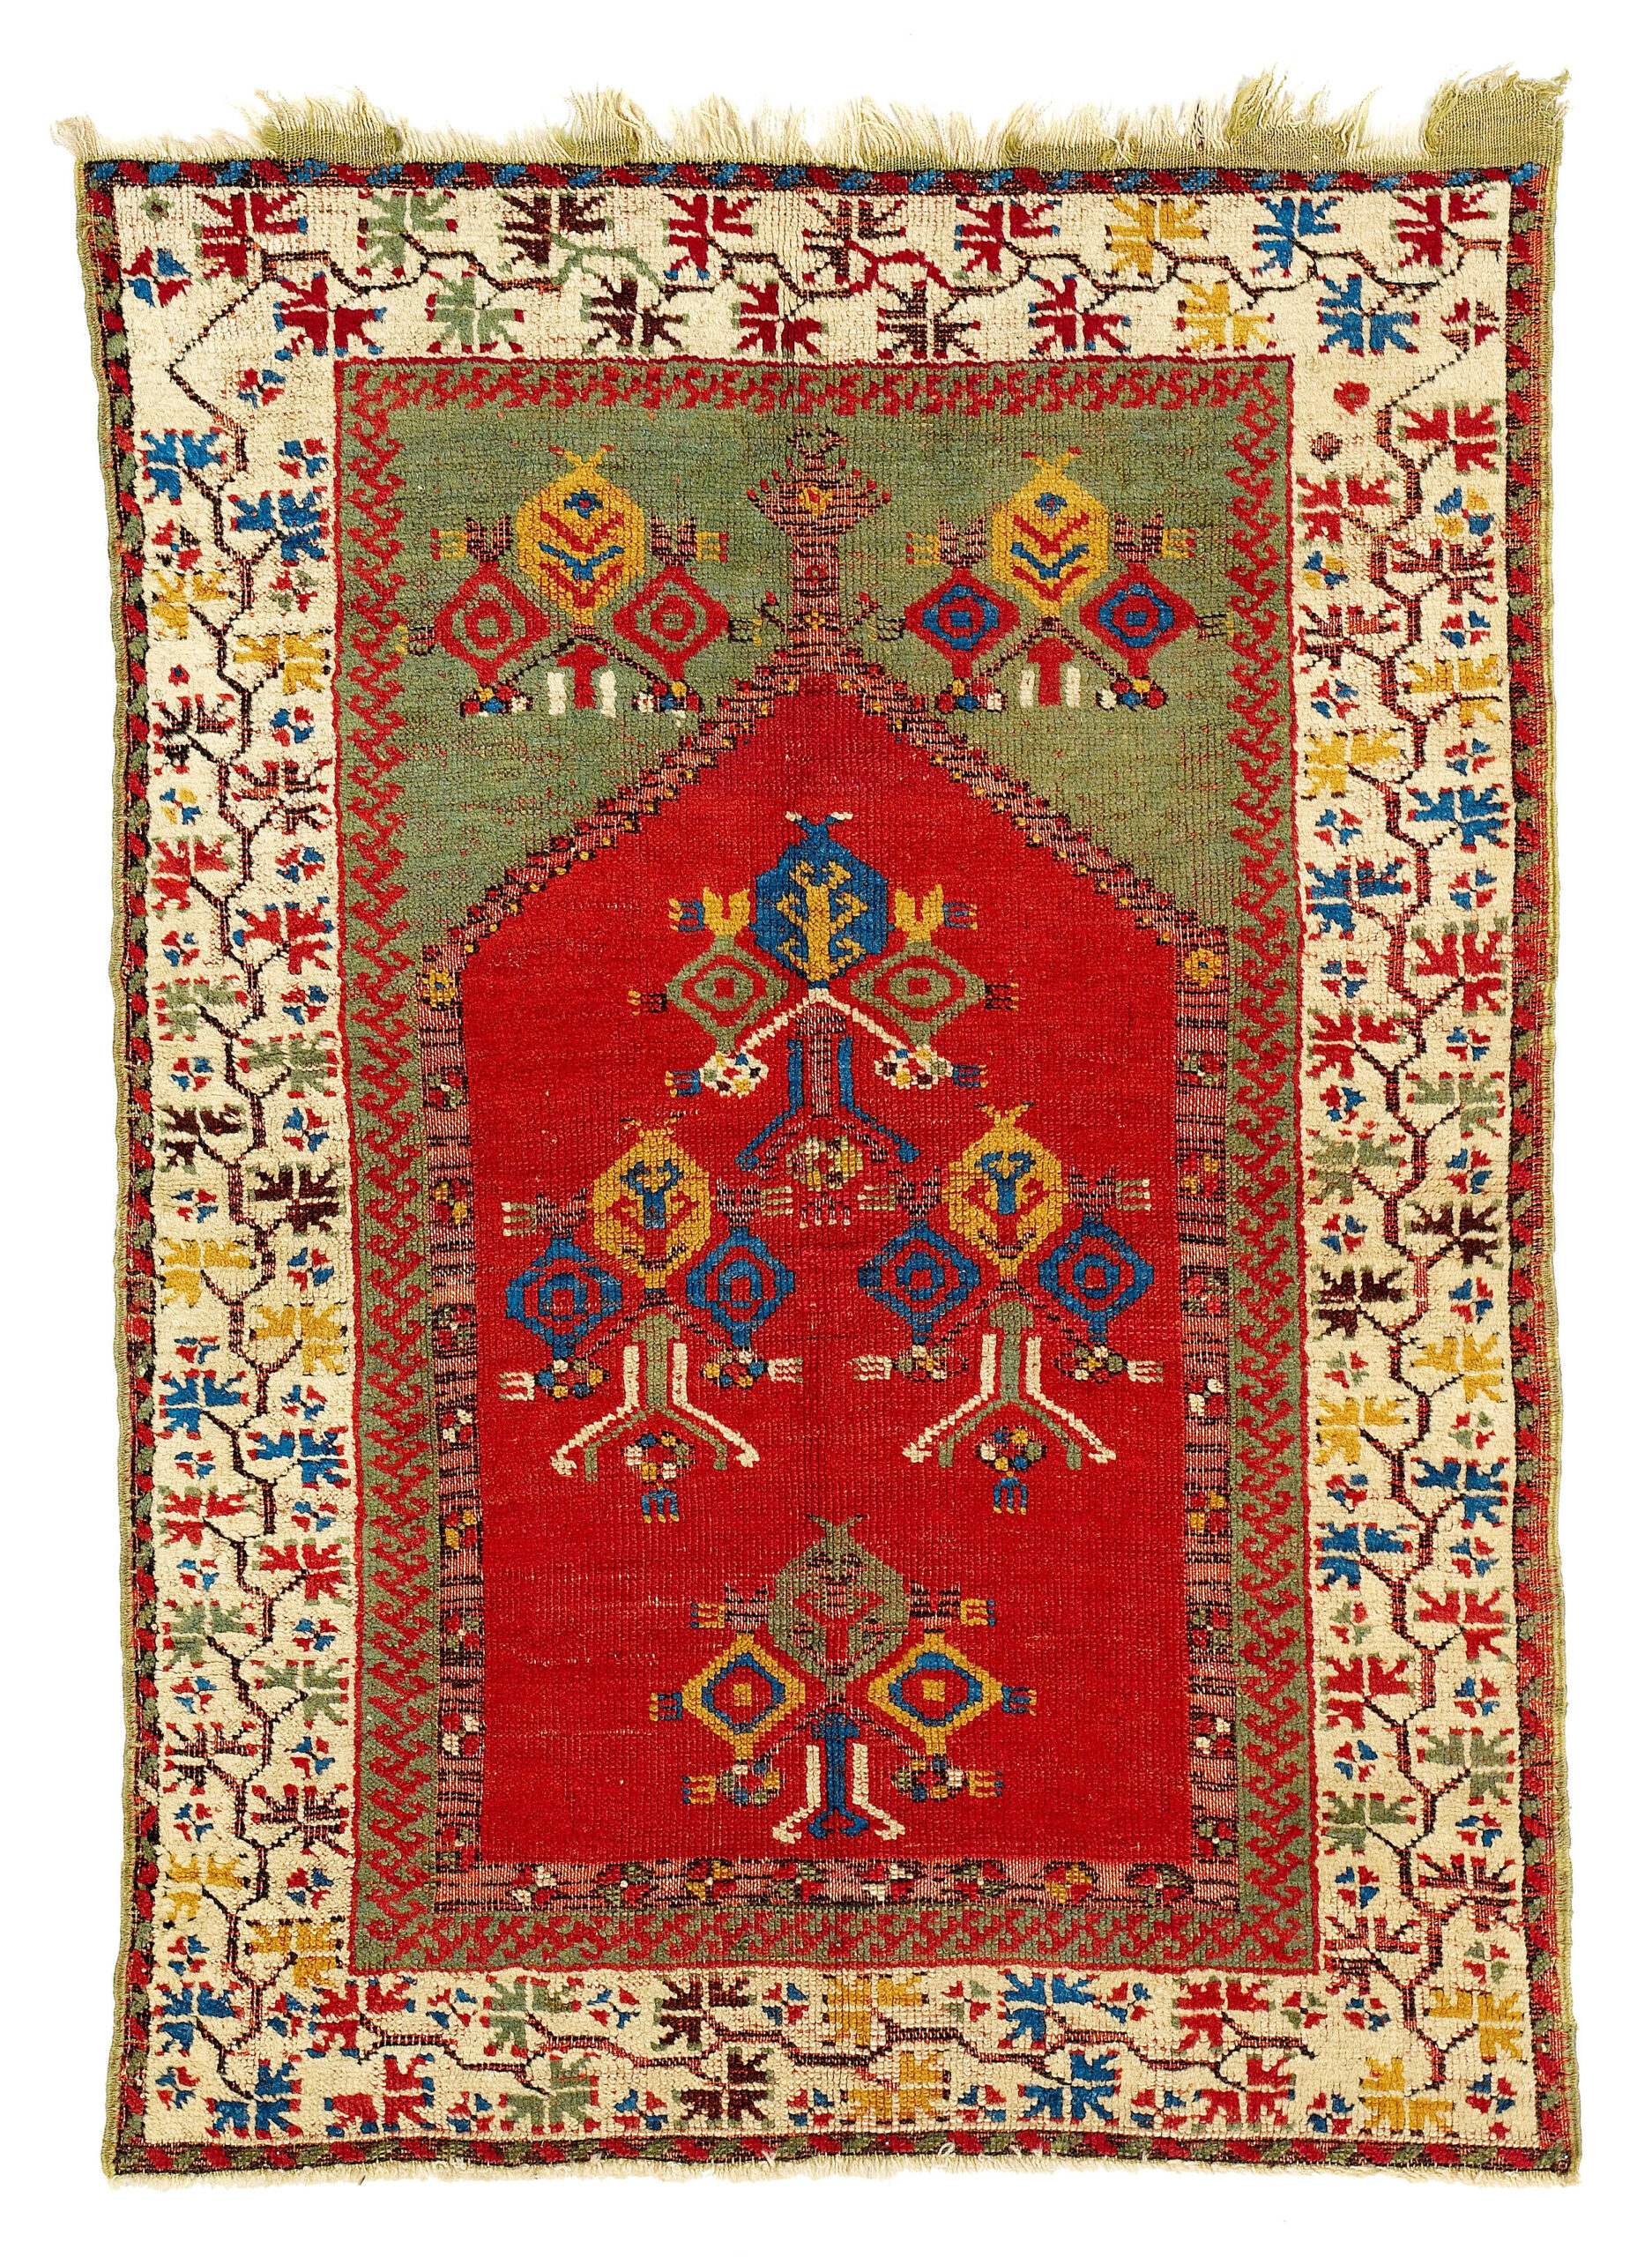 17th-18th century Cenrtal Anatolian carpet most probably from Aksaray